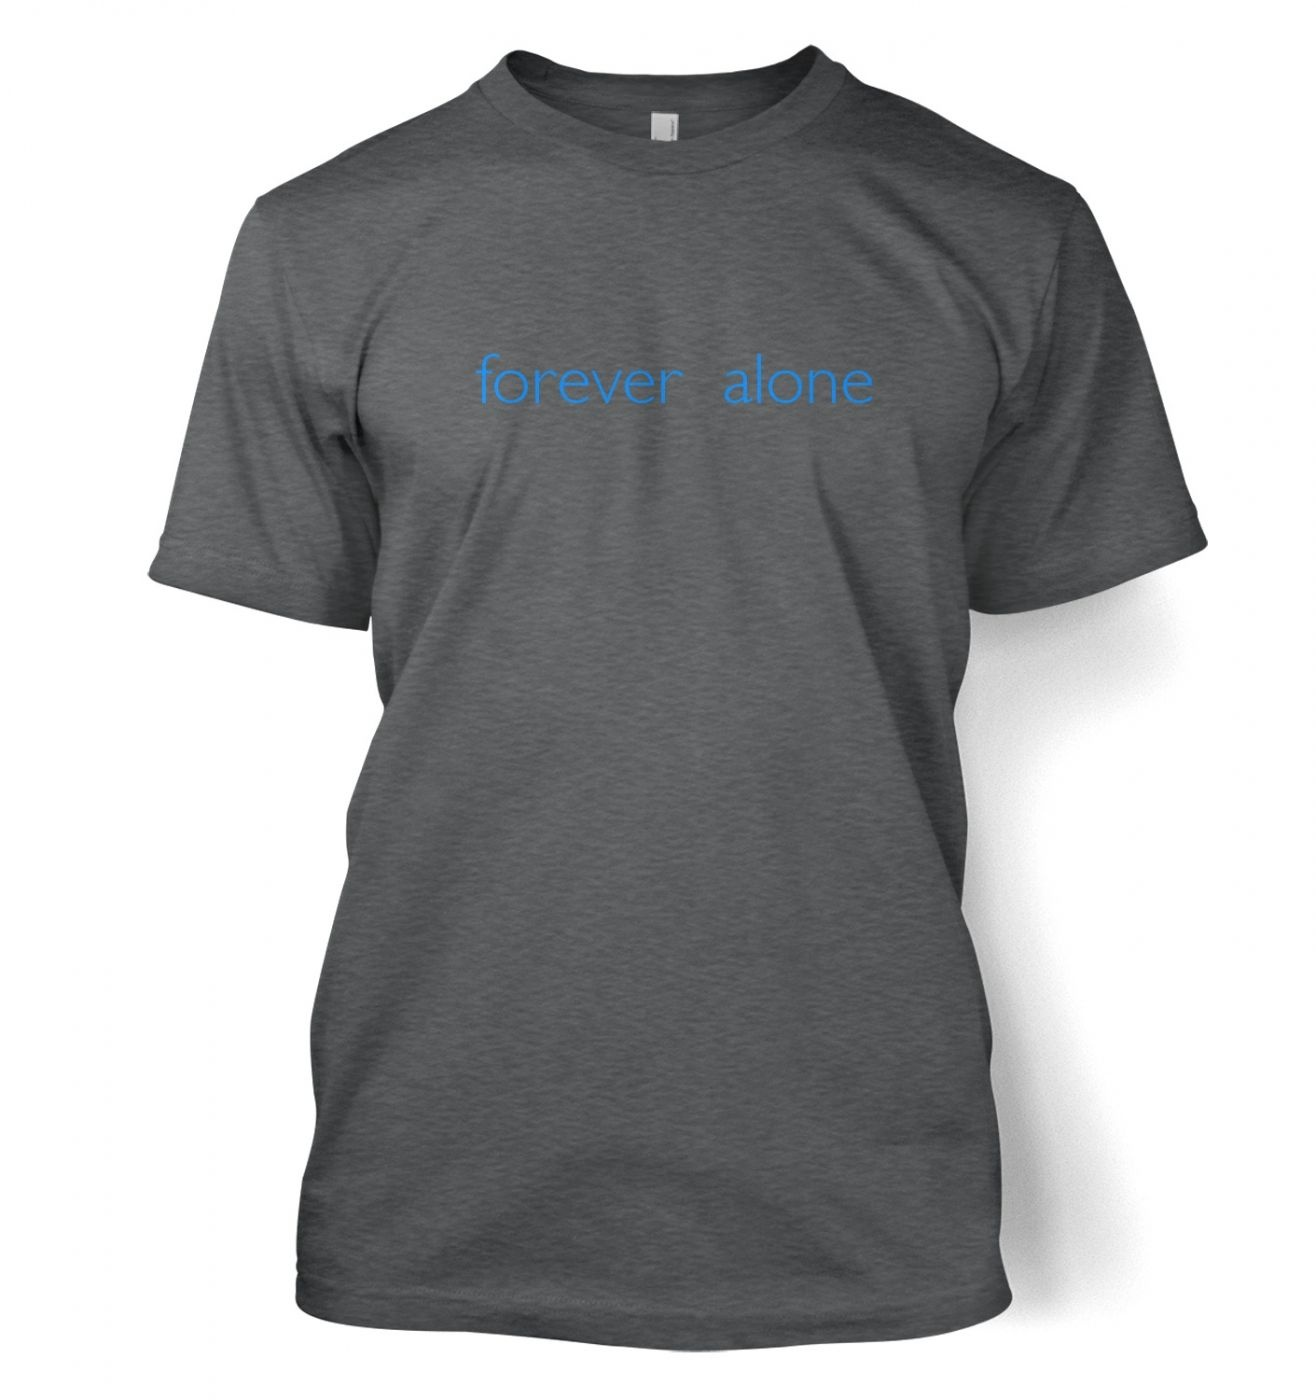 Forever alone Men's t-shirt